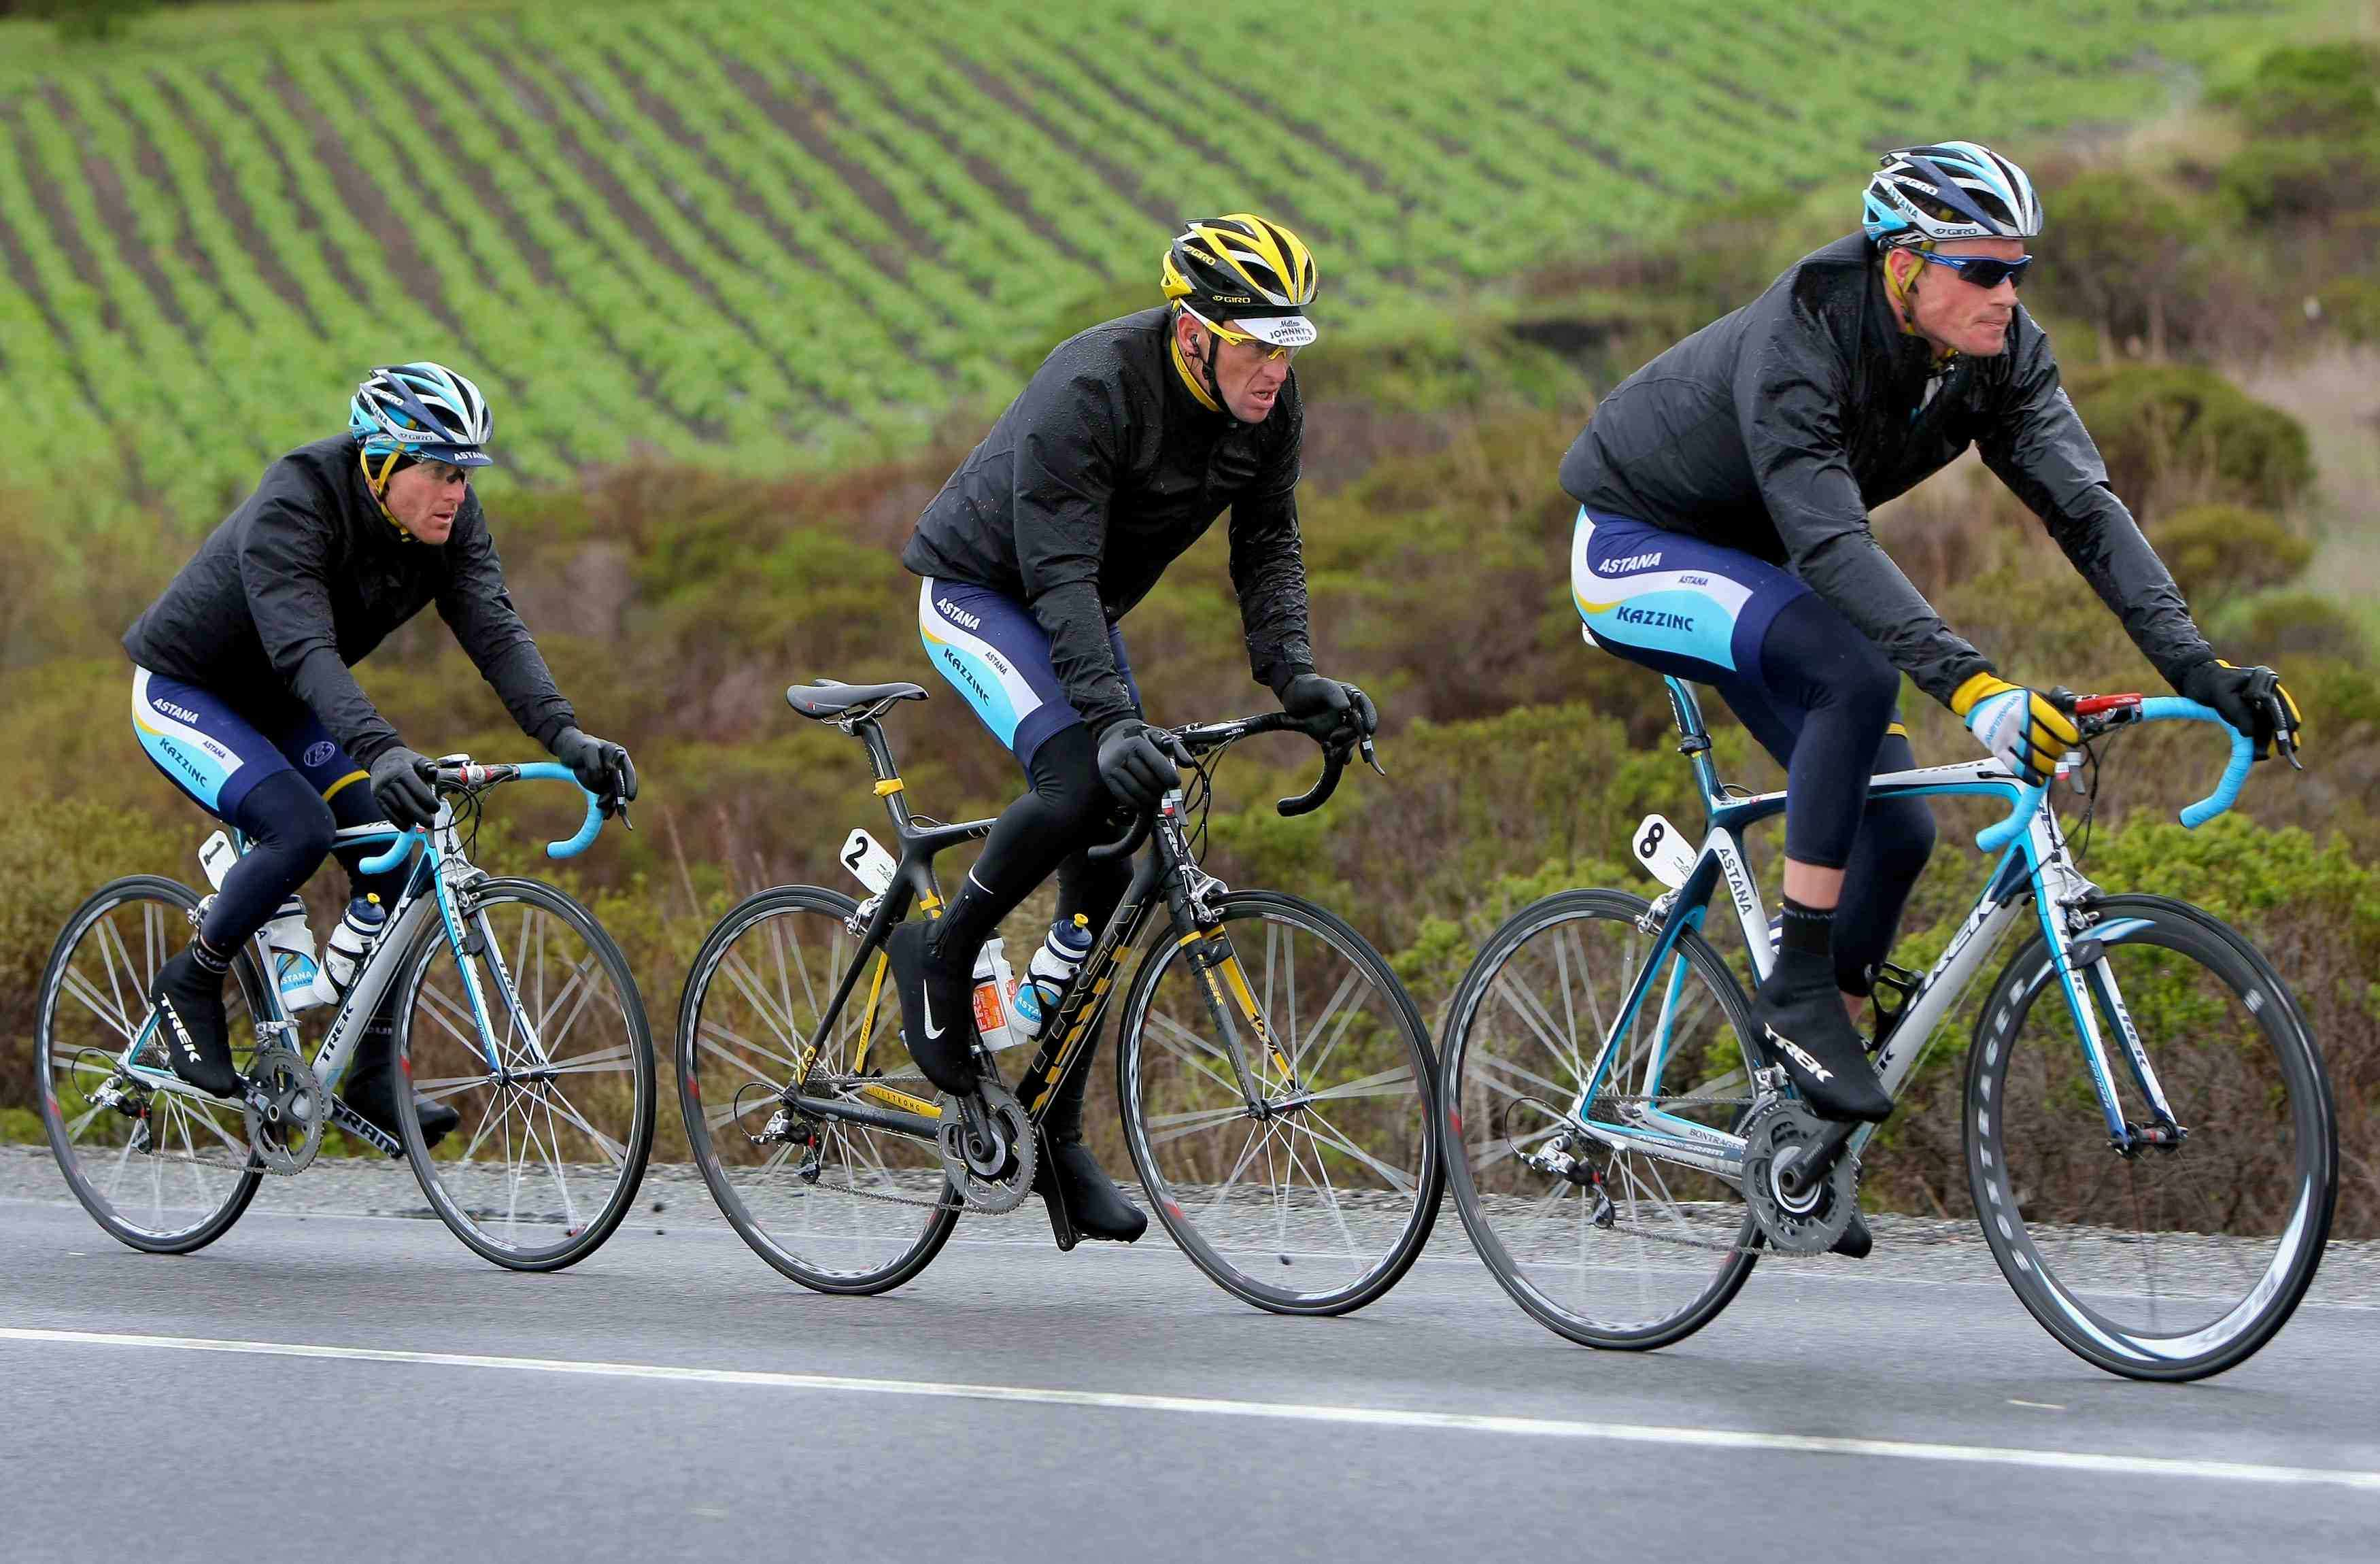 Under the veil of black rain jackets are Astana teammates Levi Leipheimer, Lance Armstrong and Gregory Rast during the 2009 Tour of California.